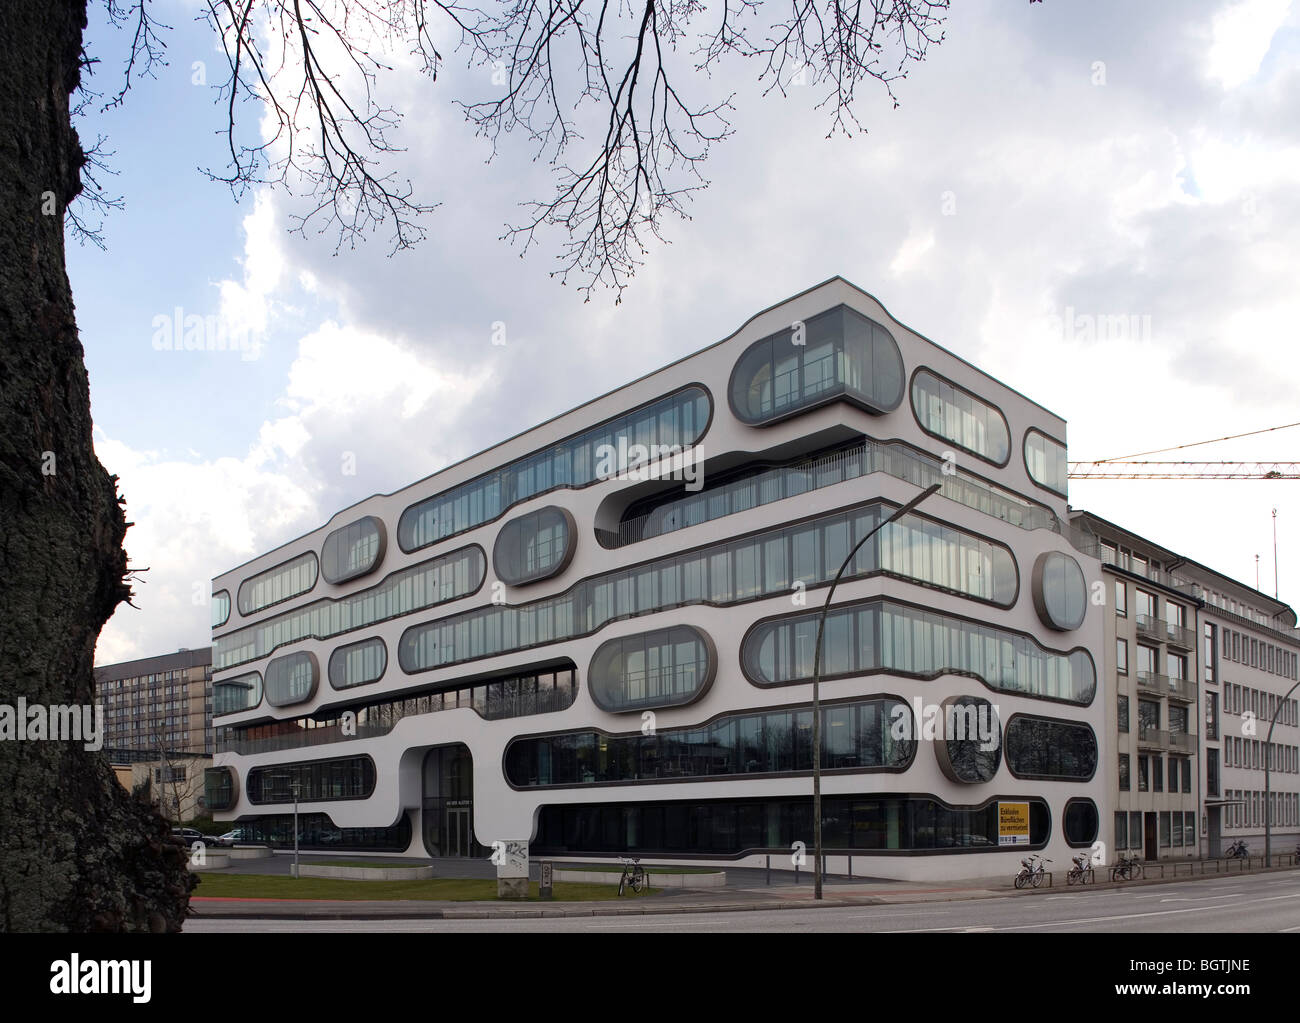 an der alster 1 offices hamburg germany j mayer h stock photo 27586426 alamy. Black Bedroom Furniture Sets. Home Design Ideas